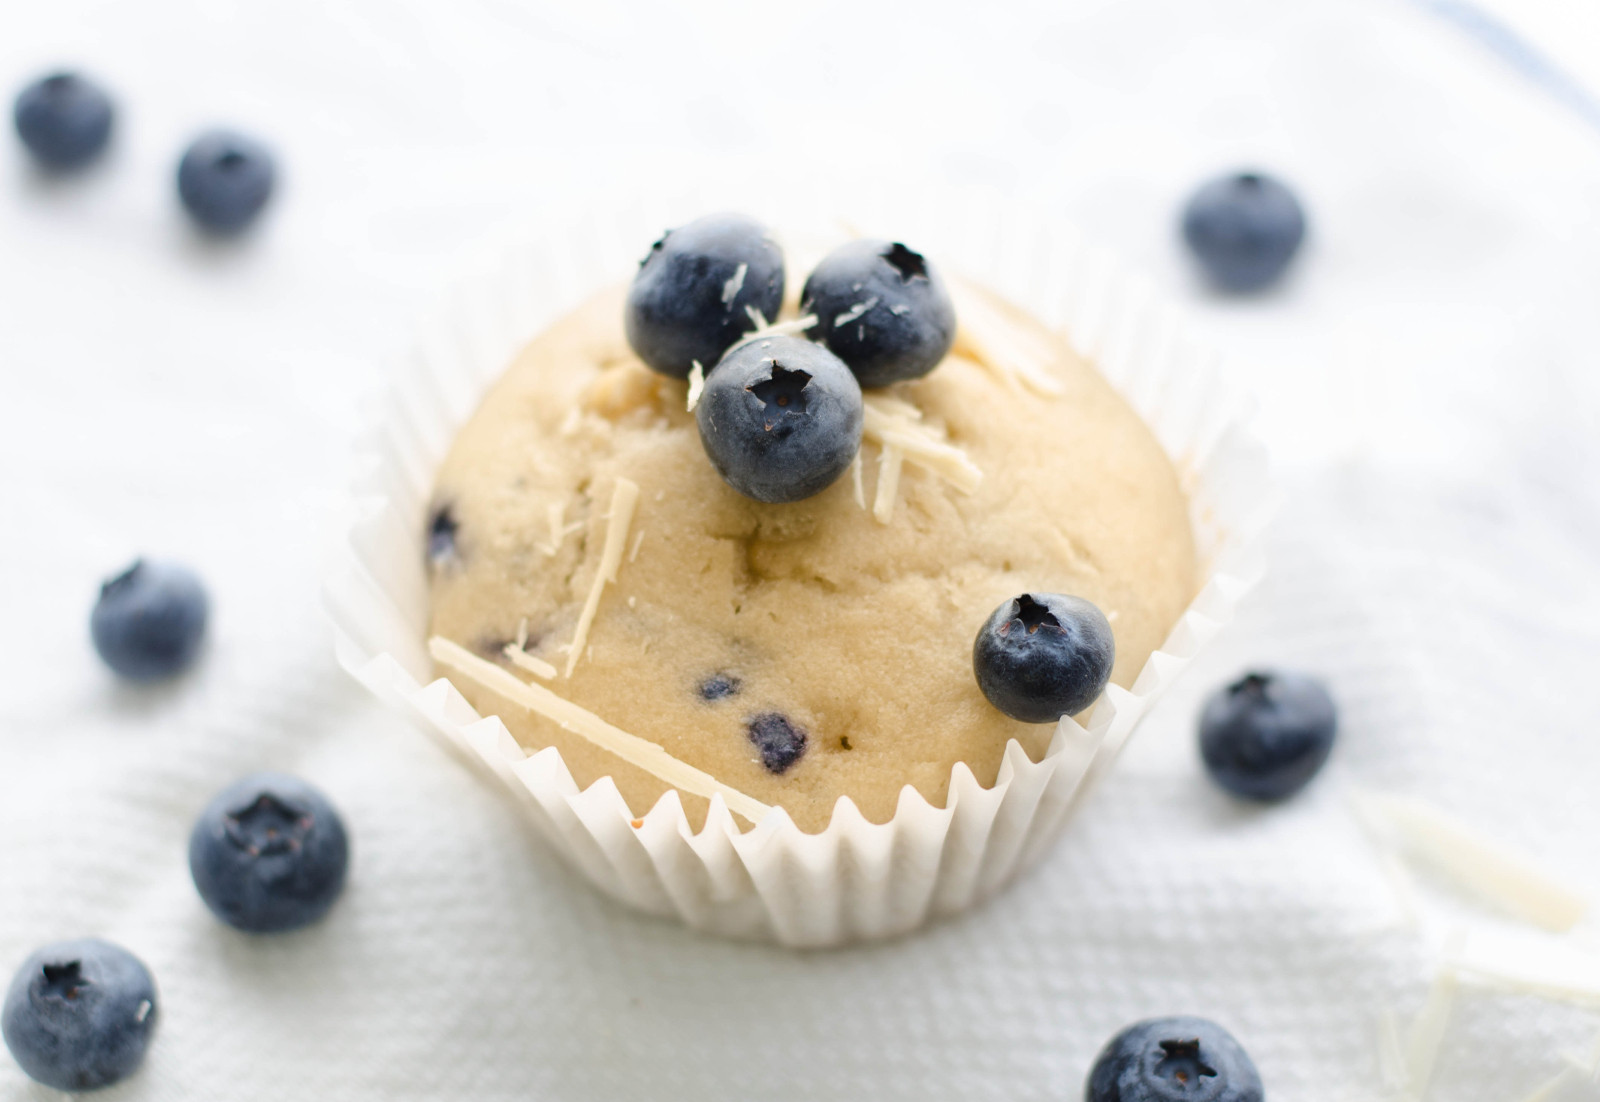 10 Dairy-Free Cupcakes and Muffins For Your Next Bake Sale